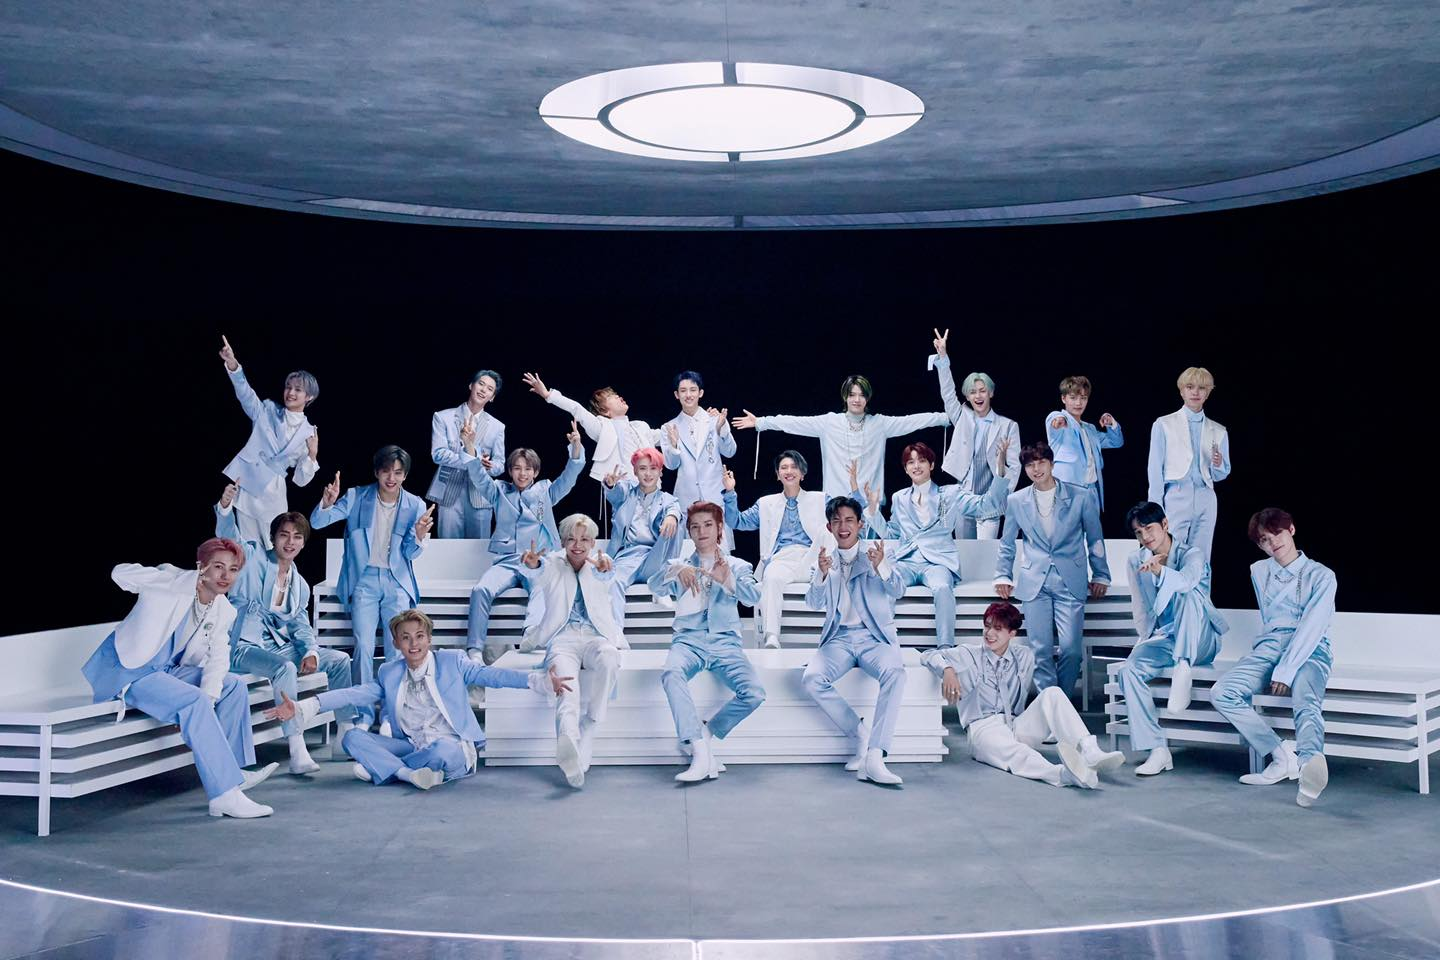 NCT 2020 Saves the Year with New Music and New Members